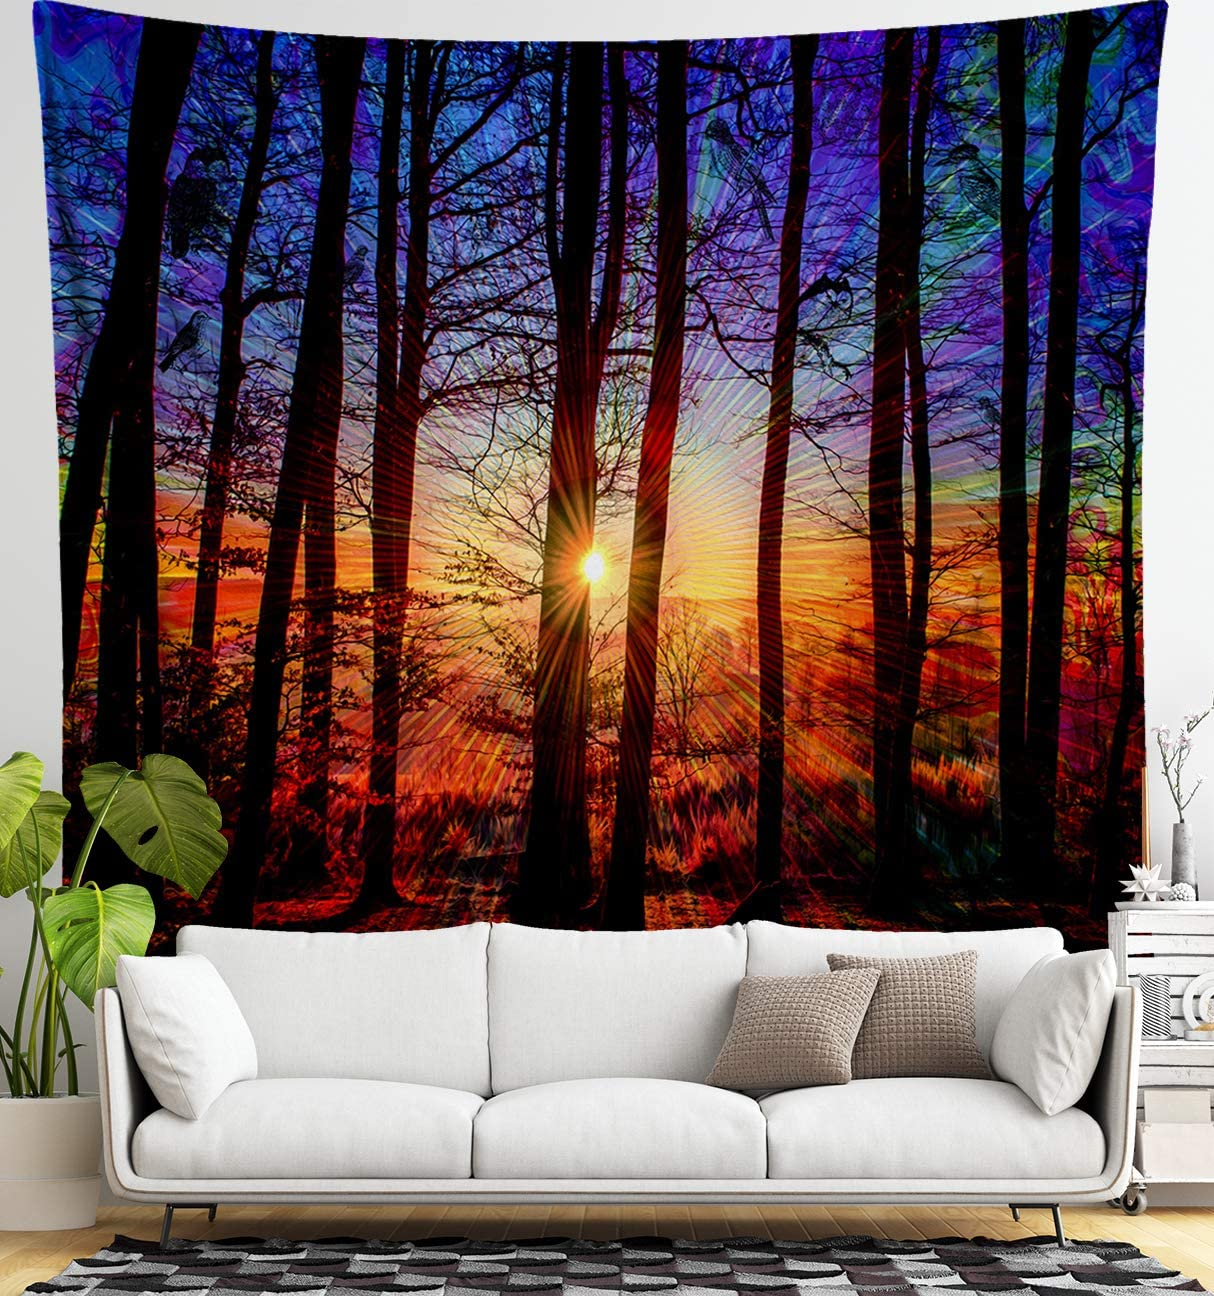 Lucid Eye Studios Sunrise Forest Tapestry- Red, Blue, Purple Wall Decor- Hidden Imagery- Woodland Bird Decor- Nature Wall Art for Bedroom, Dorm, Festivals (84 x 72 inches)